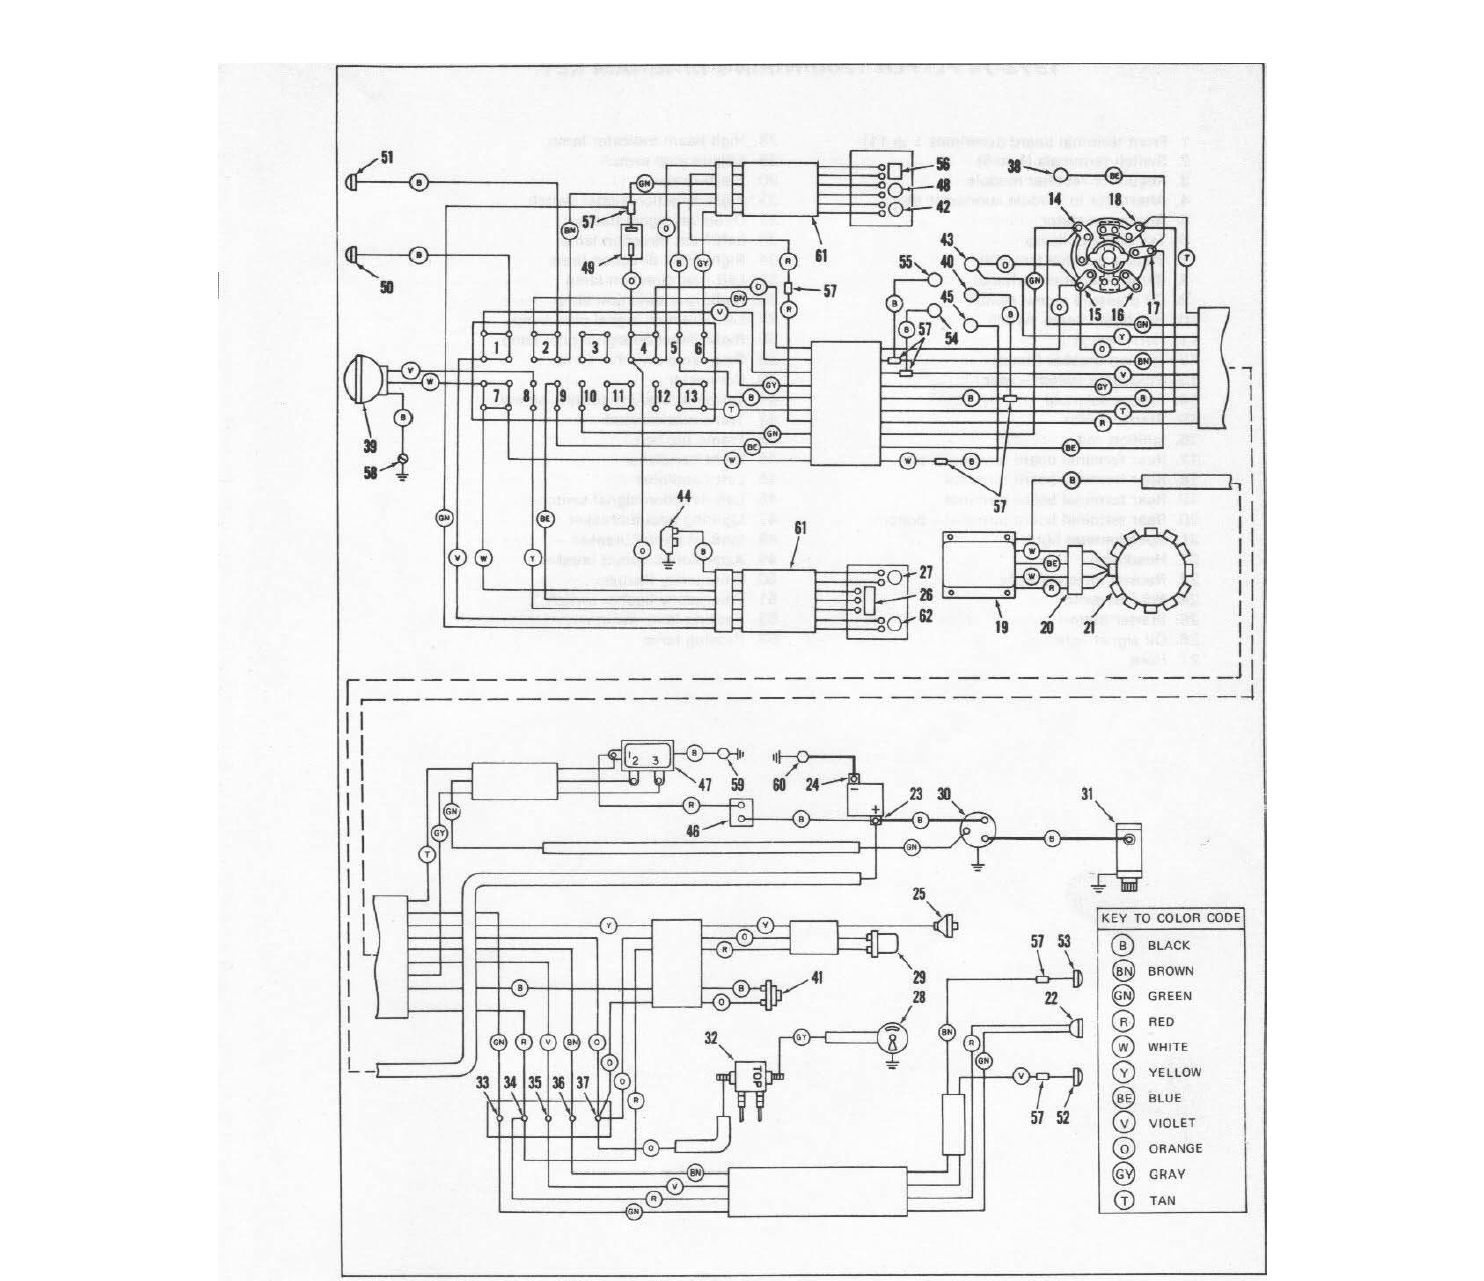 75 Flh Wiring Diagram - Technical Diagrams Harley Flh Wiring Diagram on